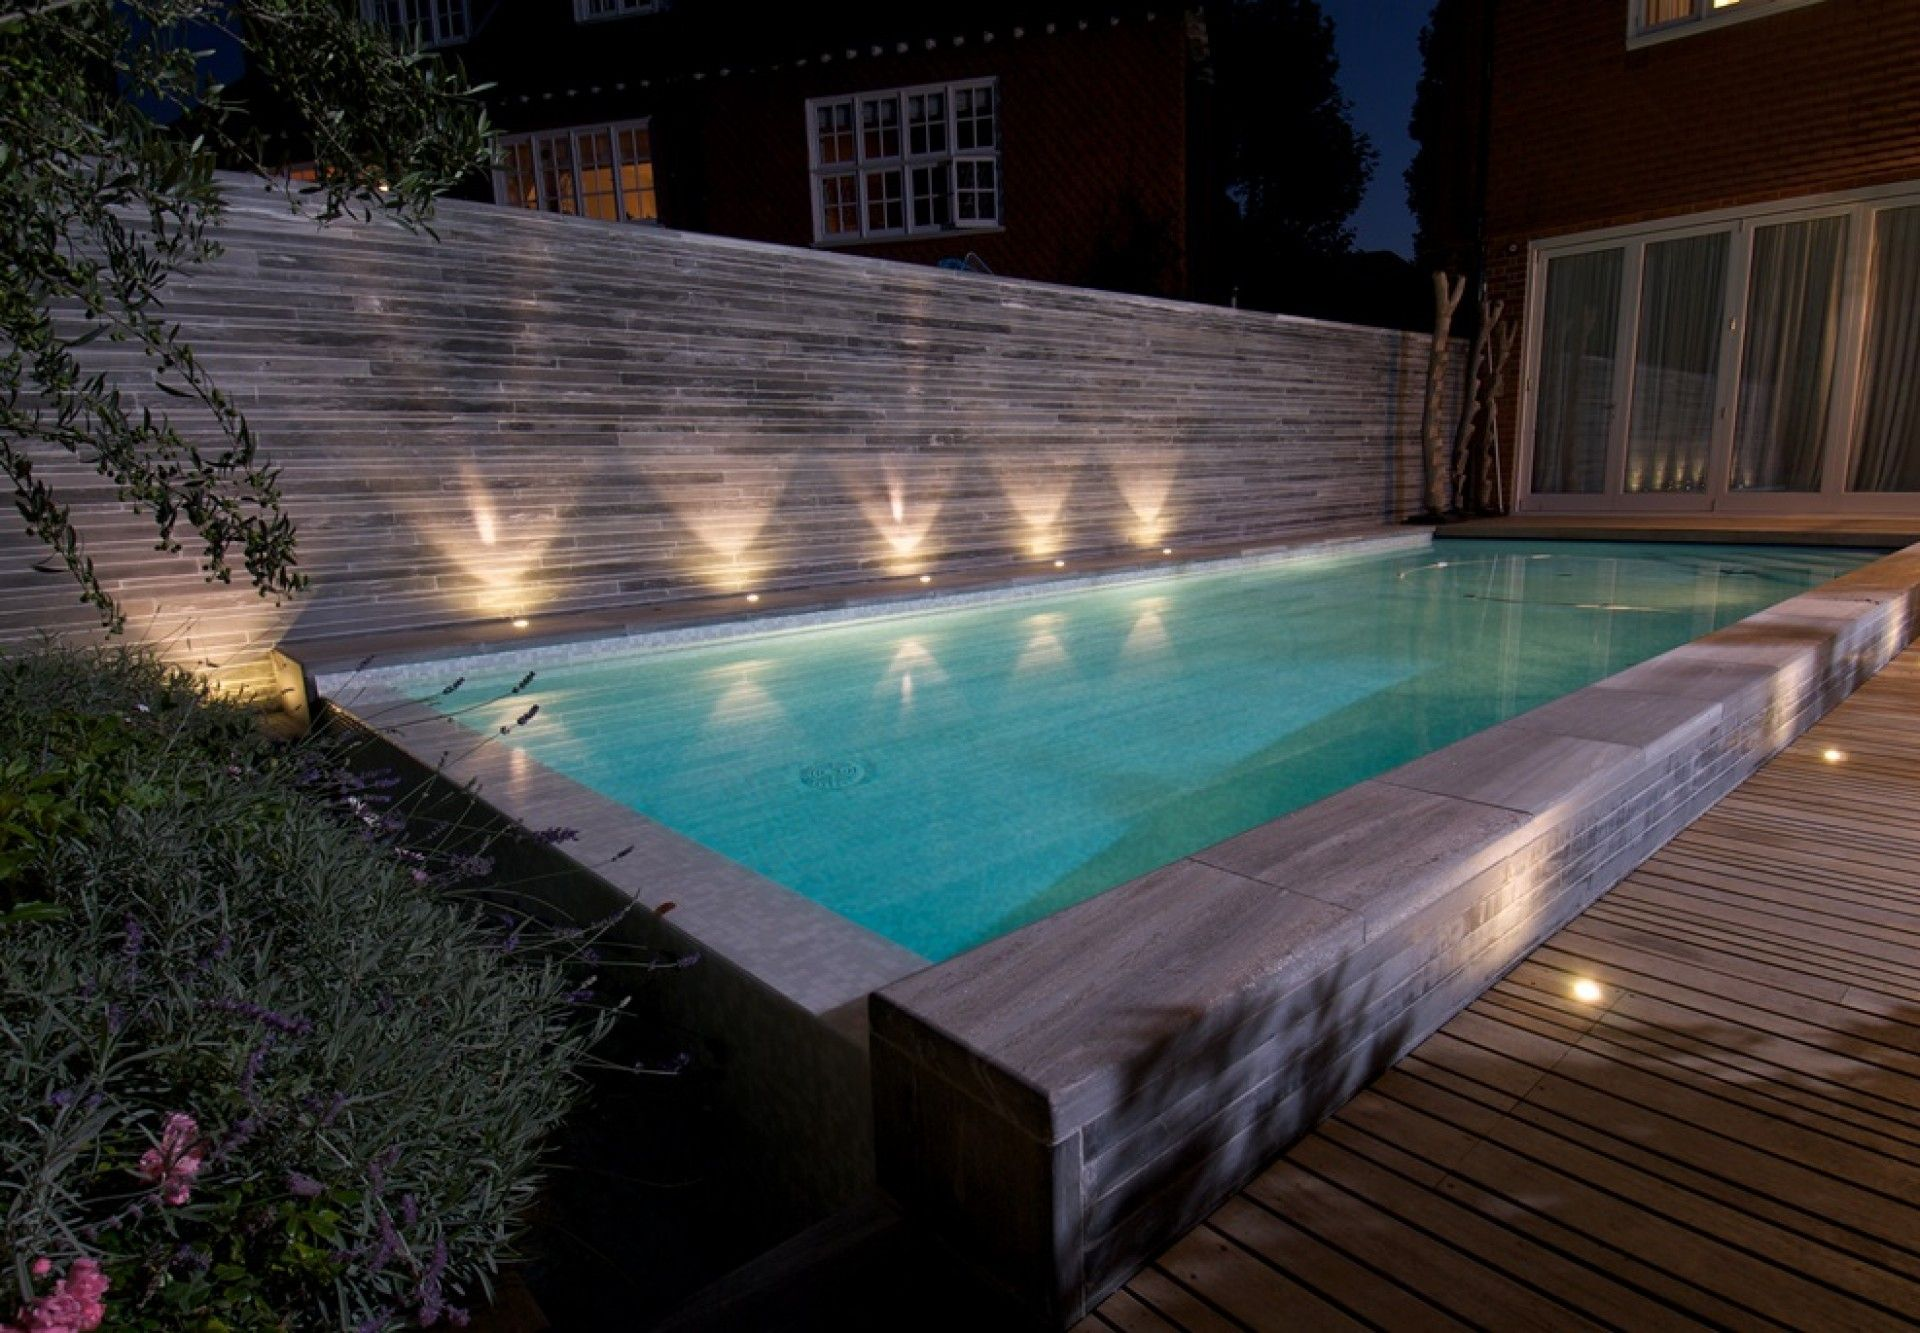 Amazing Outdoor Recessed Lighting Around Pool Design | Swimming Pool Designs  | Pinterest | Pool Designs, Swimming Pools And House Projects